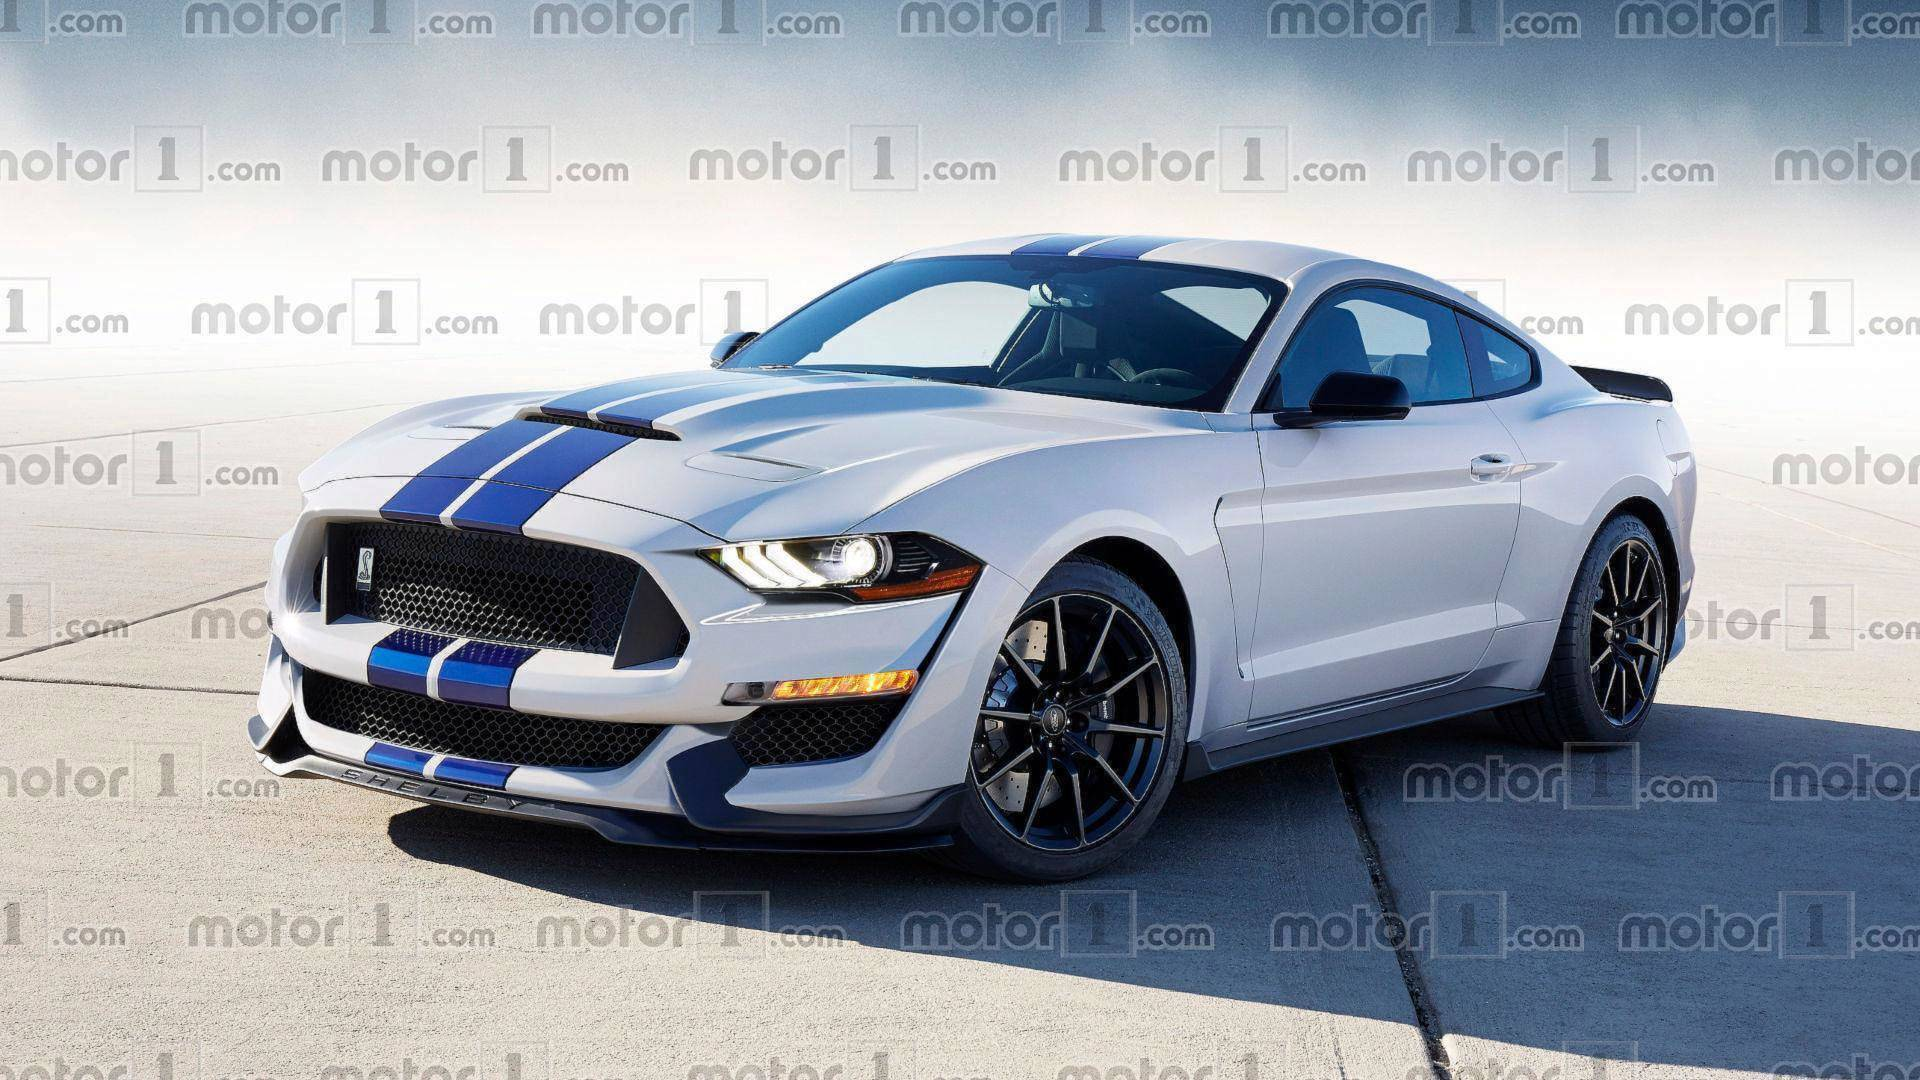 99 All New 2020 The Spy Shots Ford Mustang Svt Gt 500 New Review